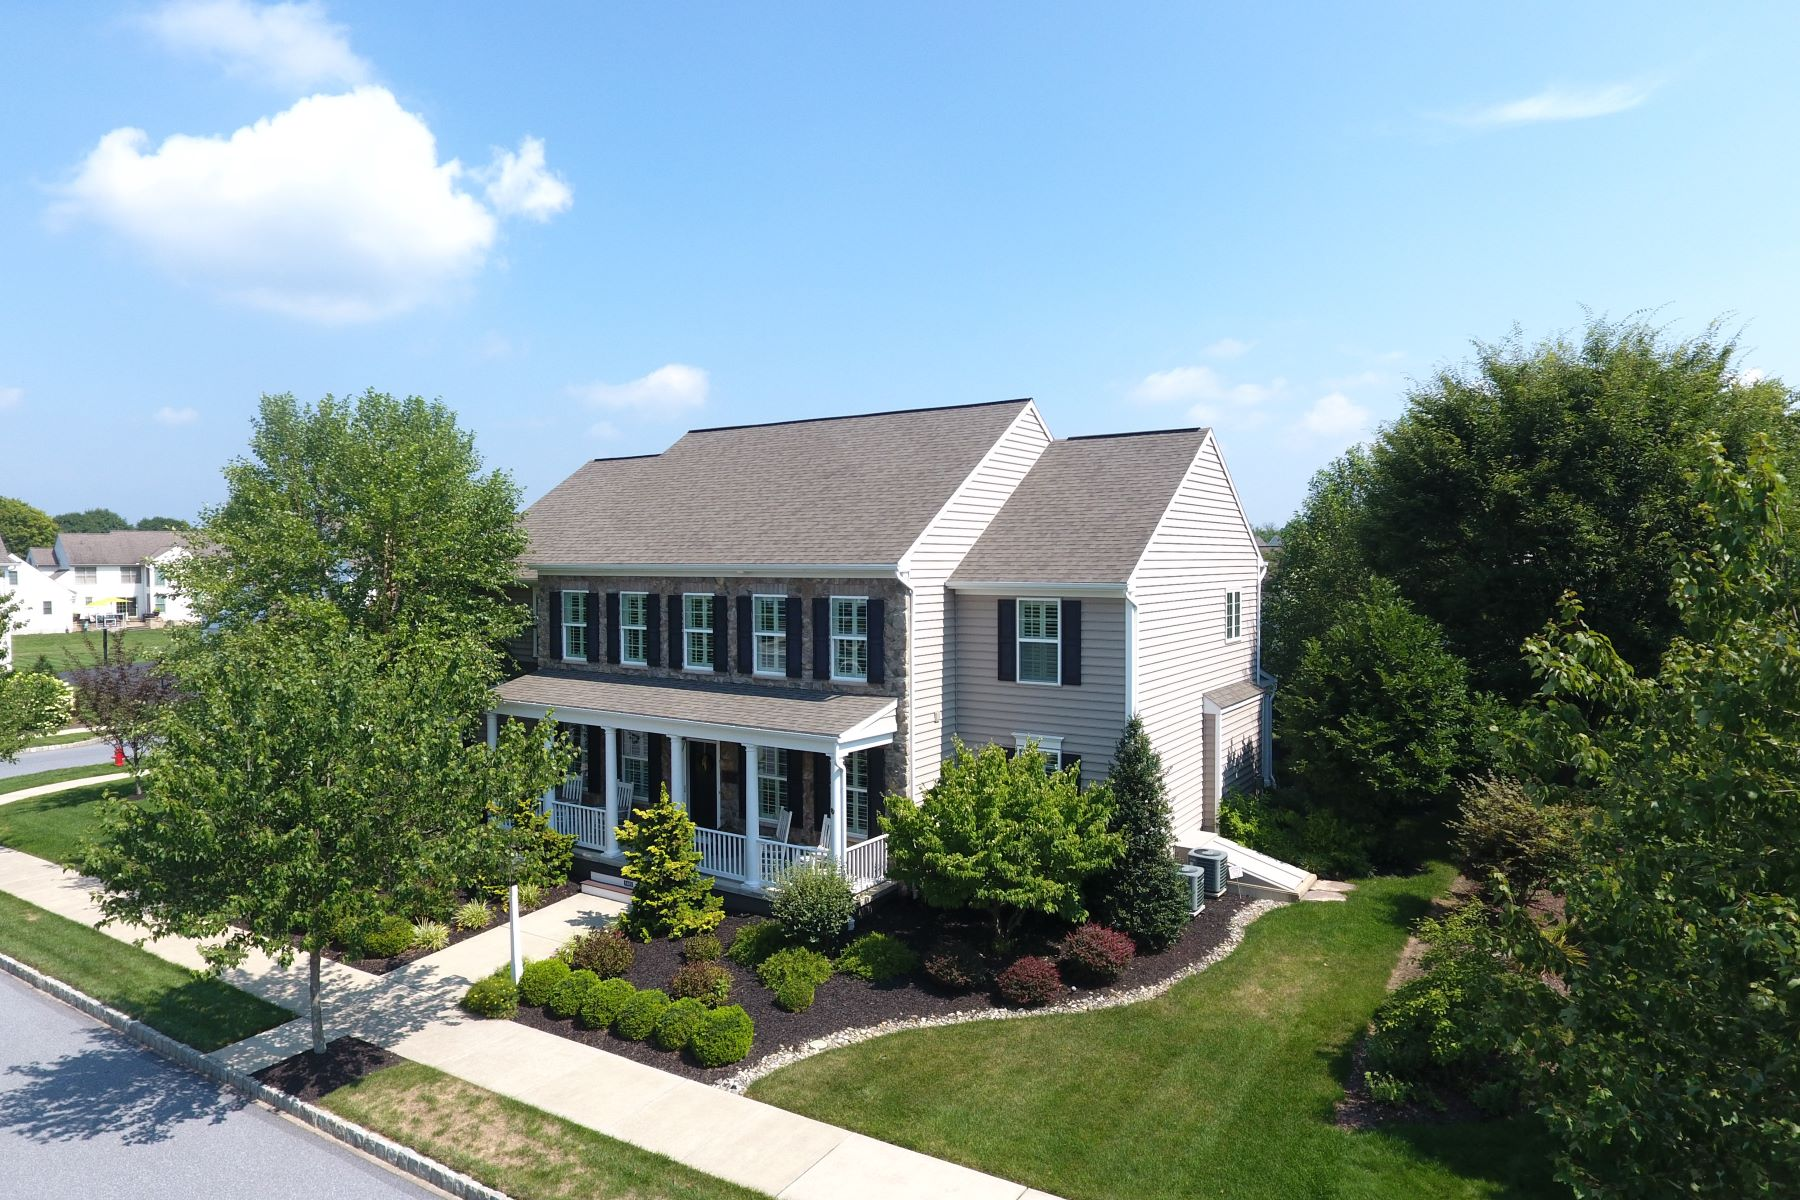 Single Family Home for Sale at 1405 Banner Drive 1405 Banner Drive Lancaster, Pennsylvania 17601 United States